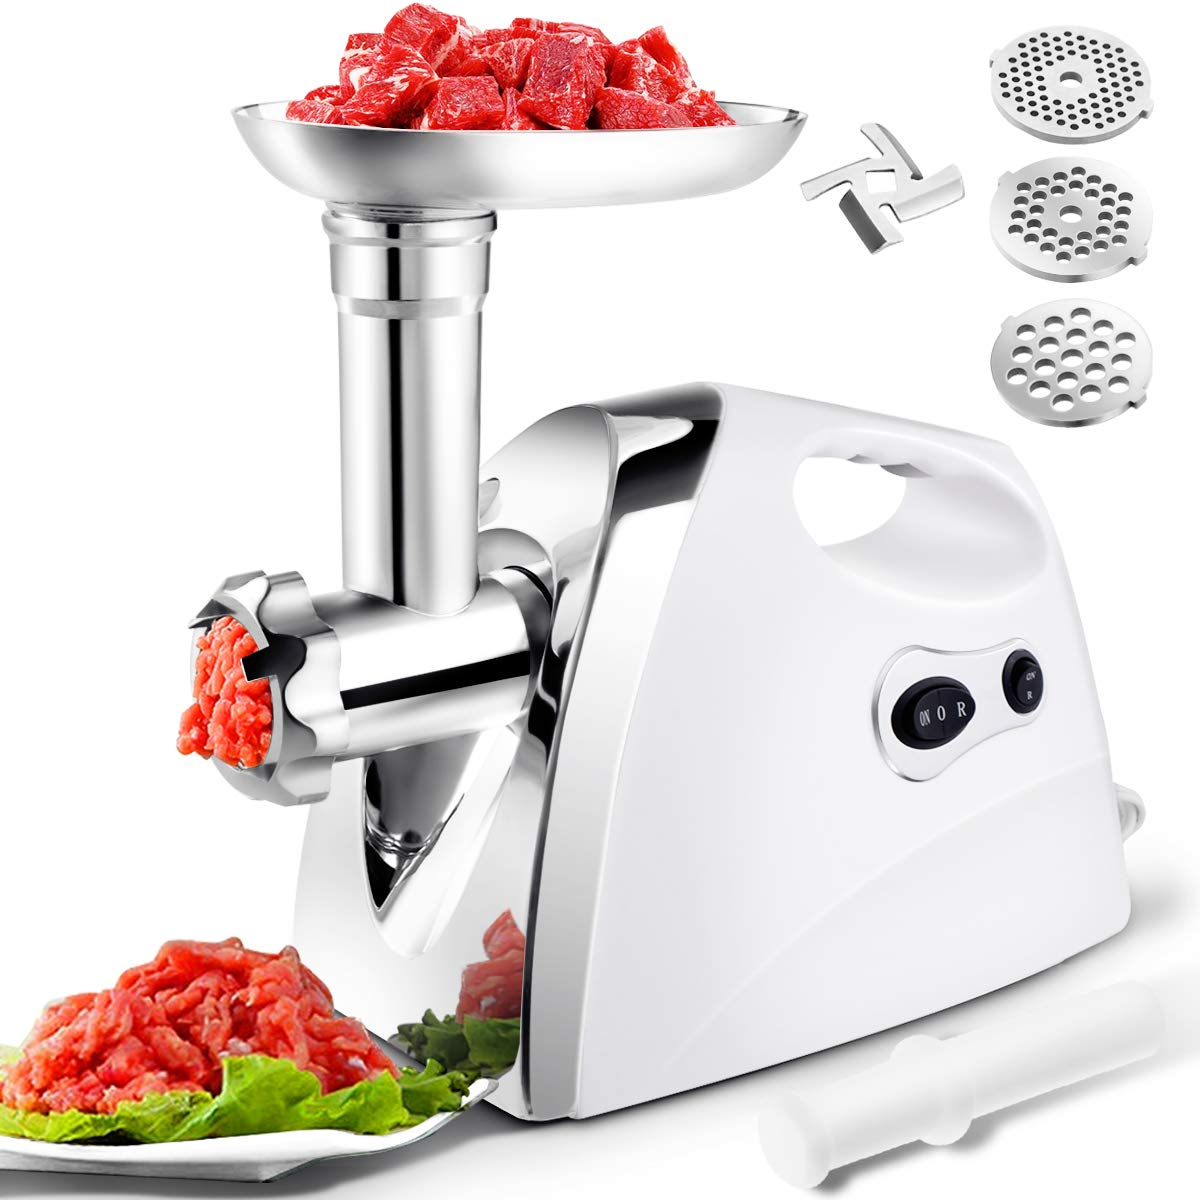 Giantex 2800W Electric Meat Grinder Sausage Stuffer Maker Stainless Cutter Home Kitchen and Commercial Use UL Certificate by Giantex